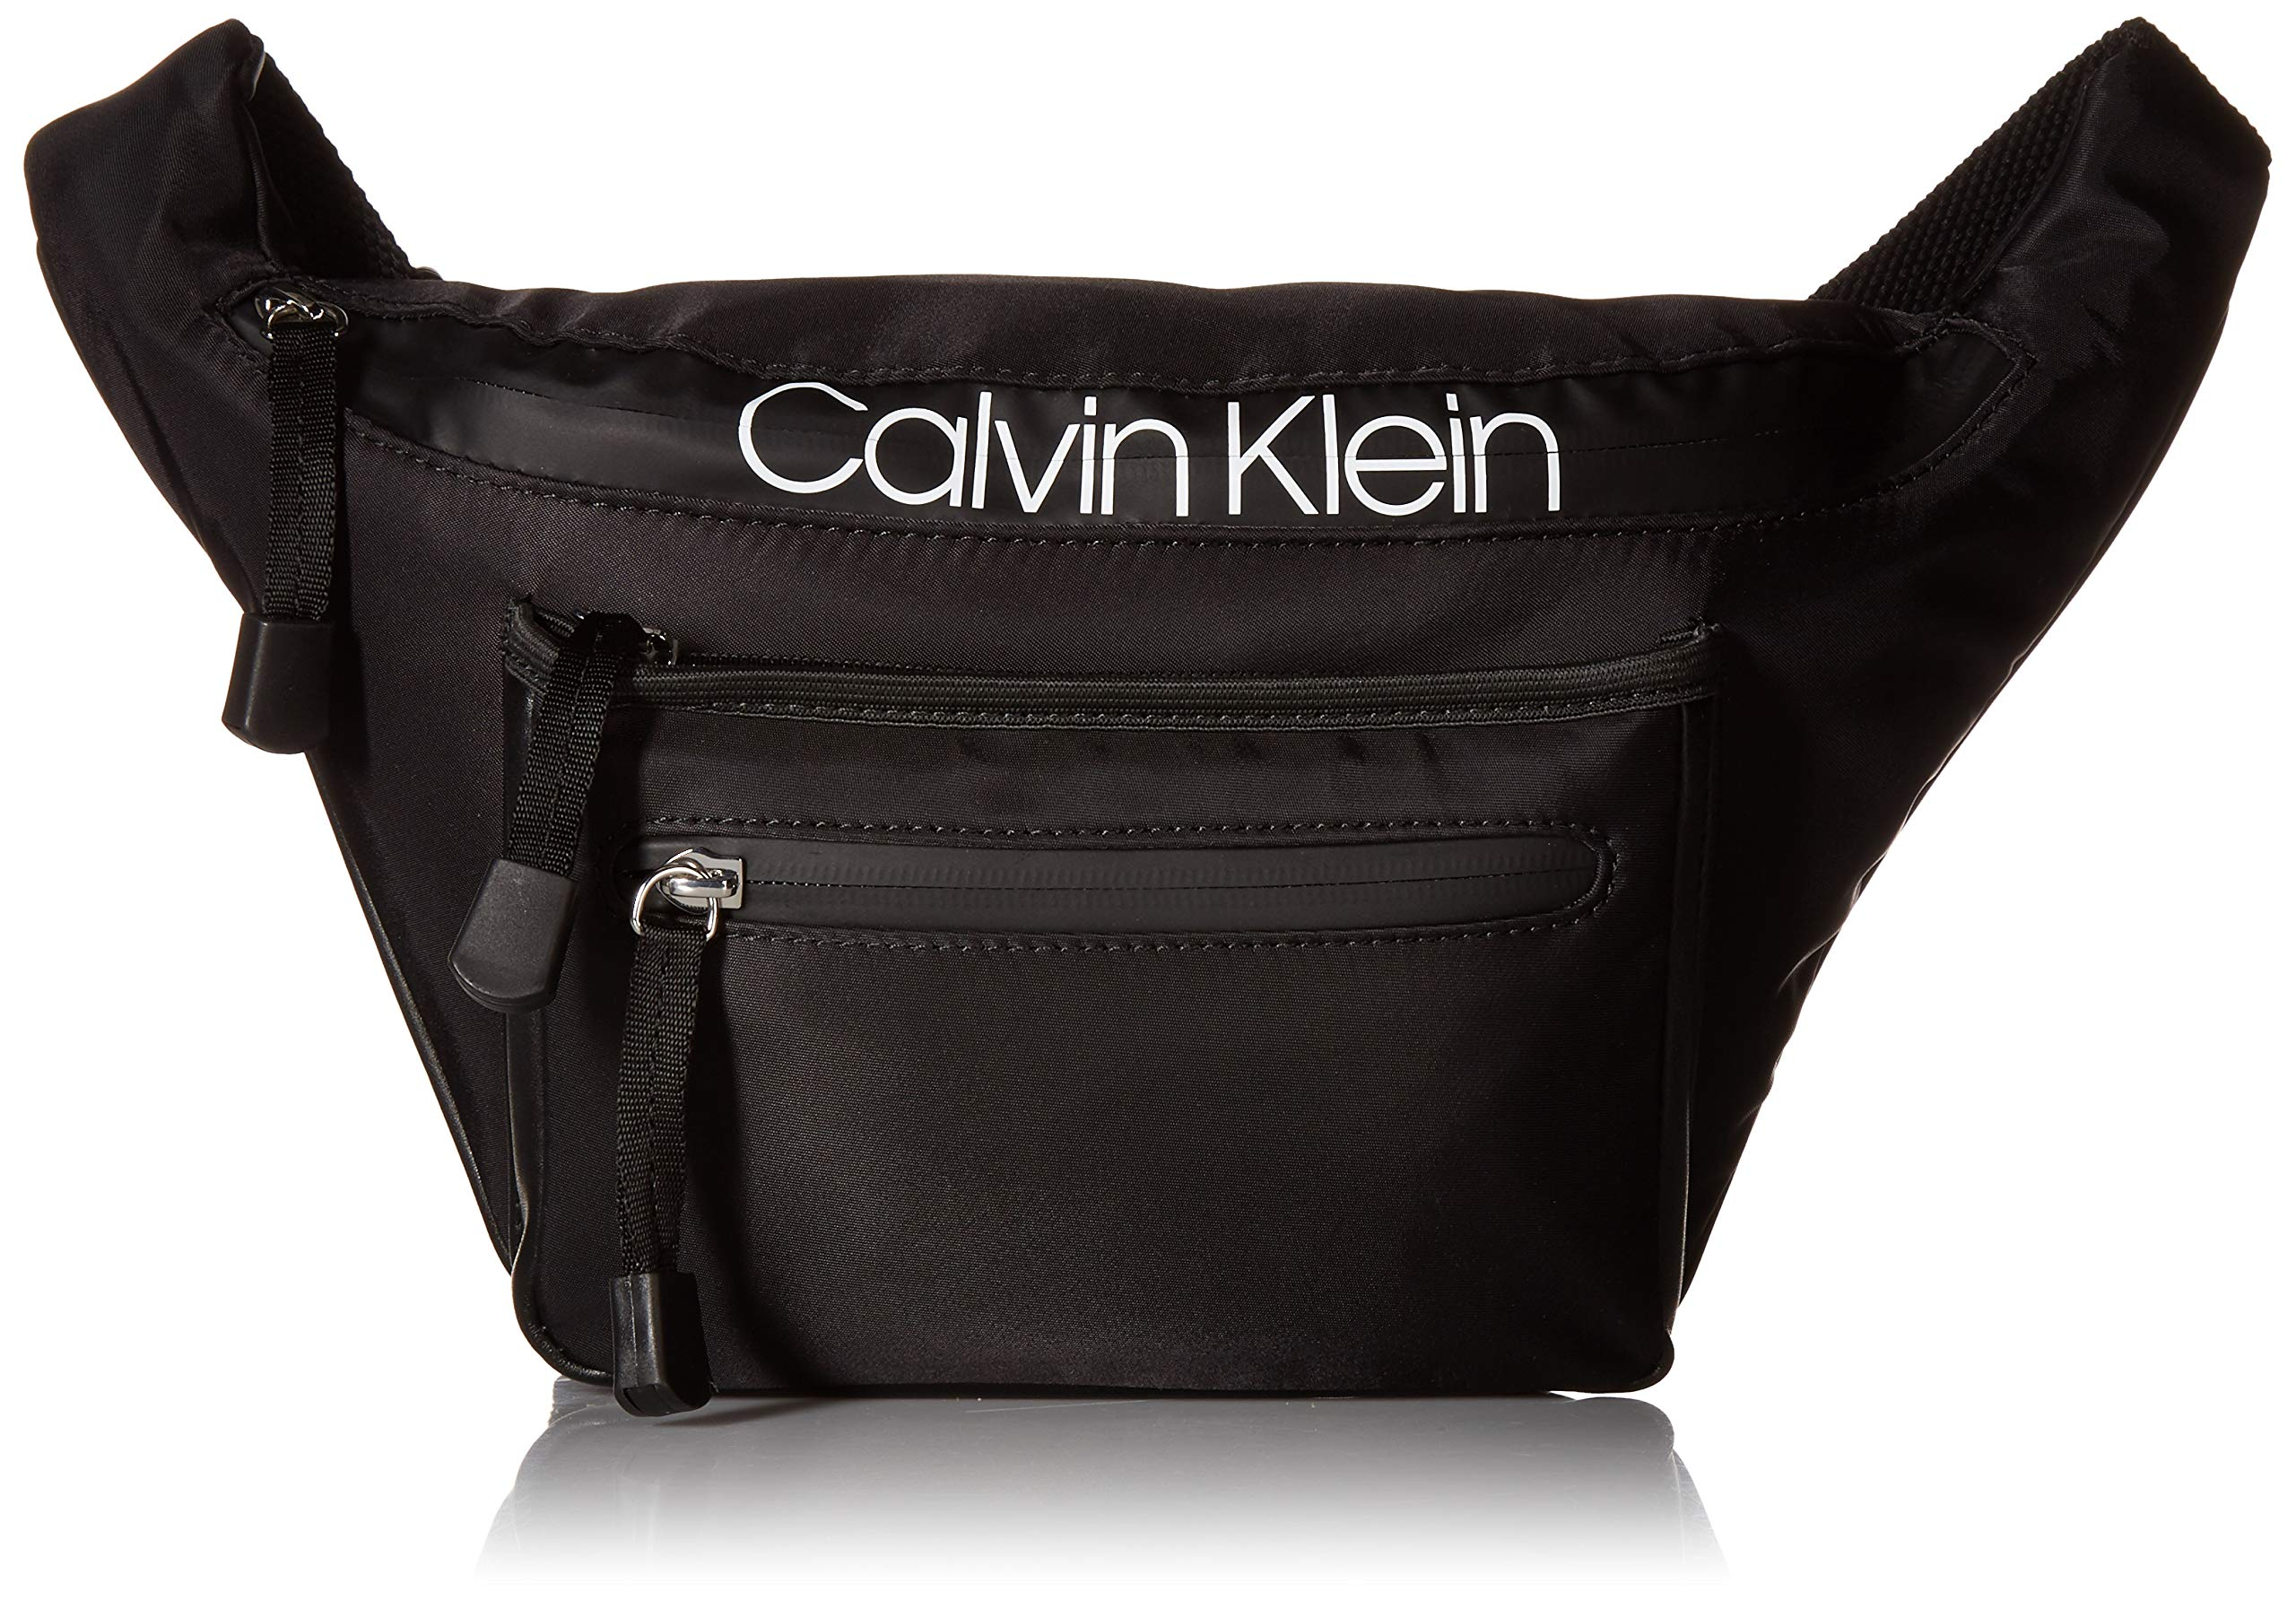 Calvin Klein Tabbie Nylon Organizational Fanny Pack,  Black/Silver, One Size